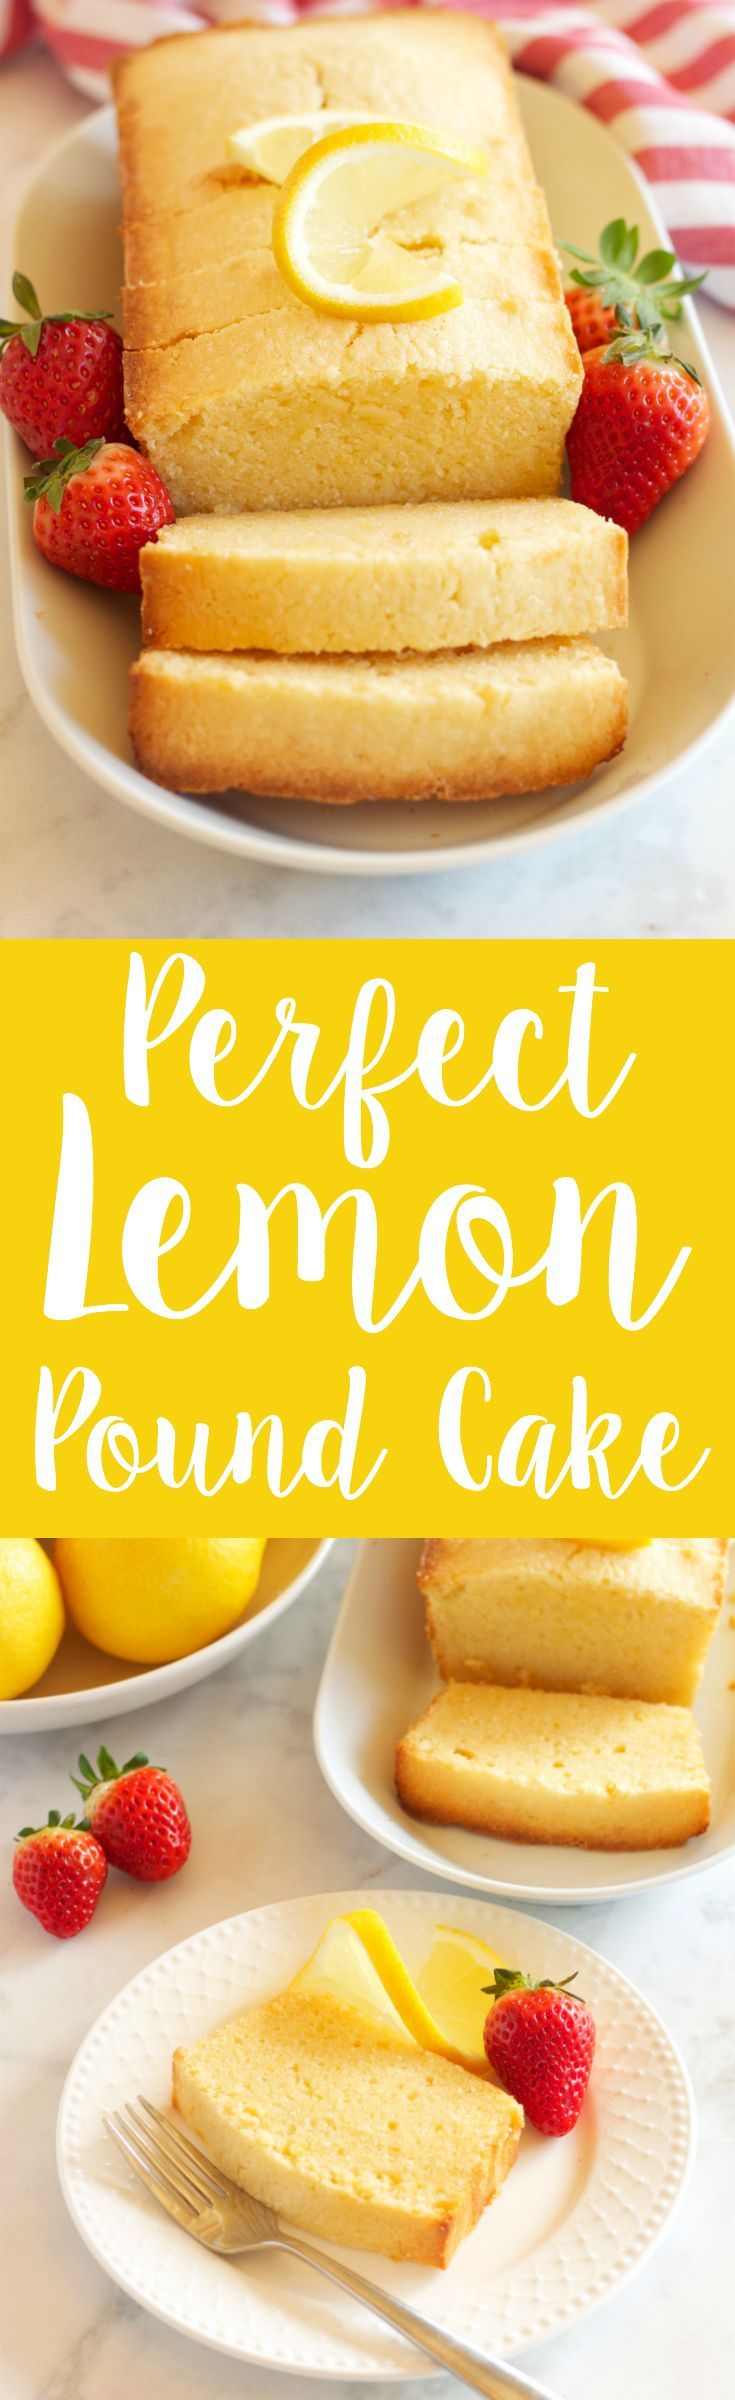 This Perfect Lemon Pound Cake is the ultimate no-fail Spring dessert recipe that's moist and tender and made with fresh lemons! Recipe from thebusybaker.ca!